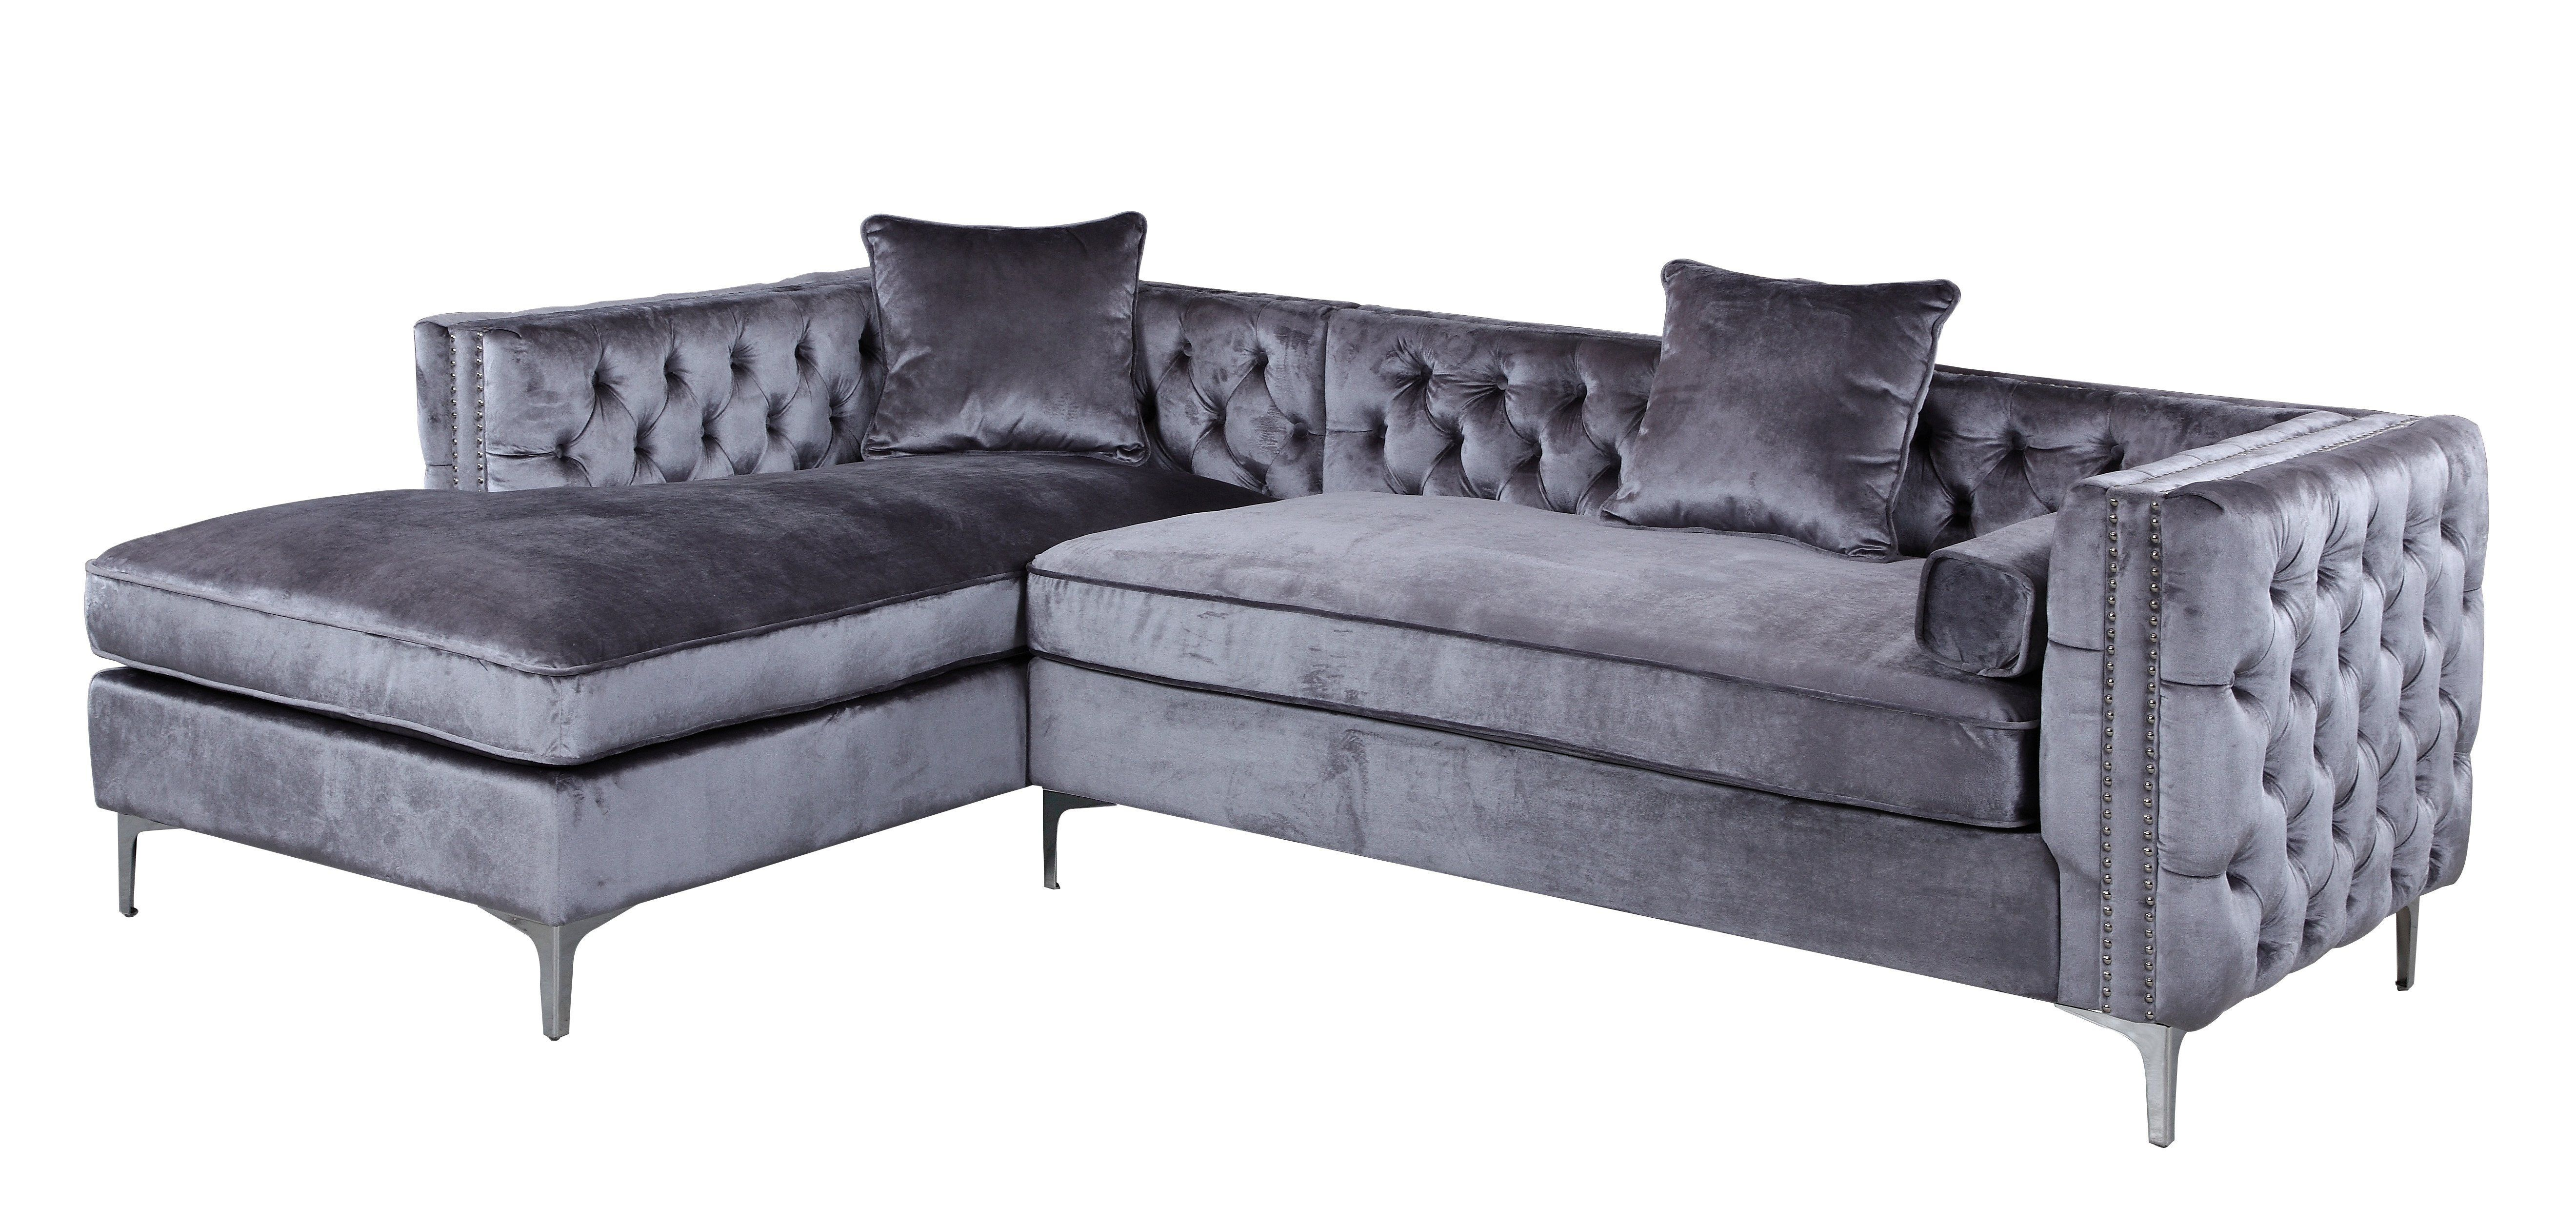 7196bb7111de Da Vinci Velvet Modern Contemporary Button Tufted with Silver Nailhead Trim  Silvertone Metal Y-leg Left Facing Sectional Sofa